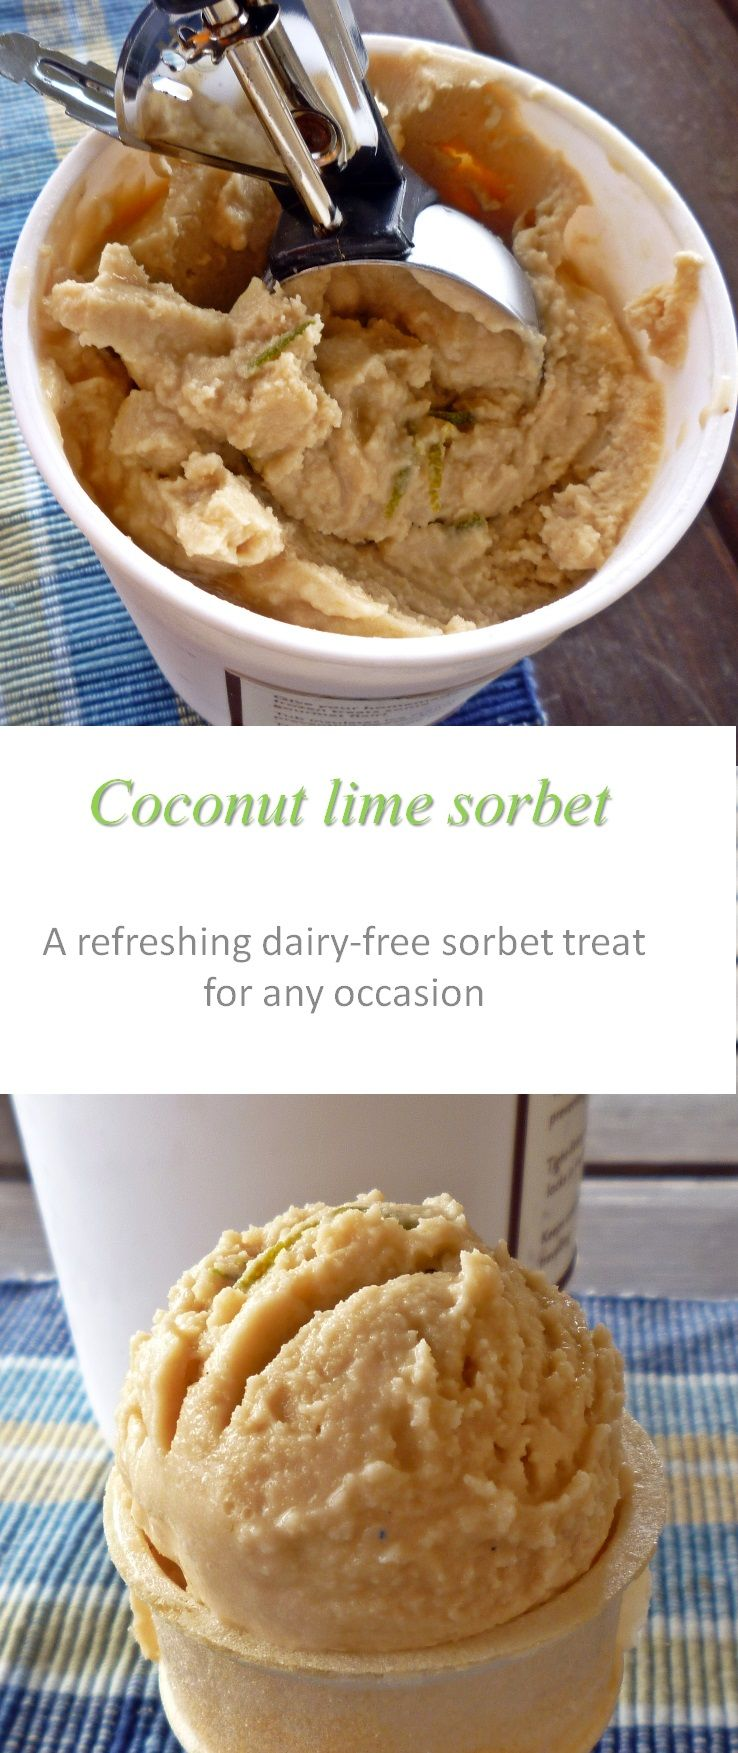 A refreshing, dairy-free coconut lime sorbet that will impress